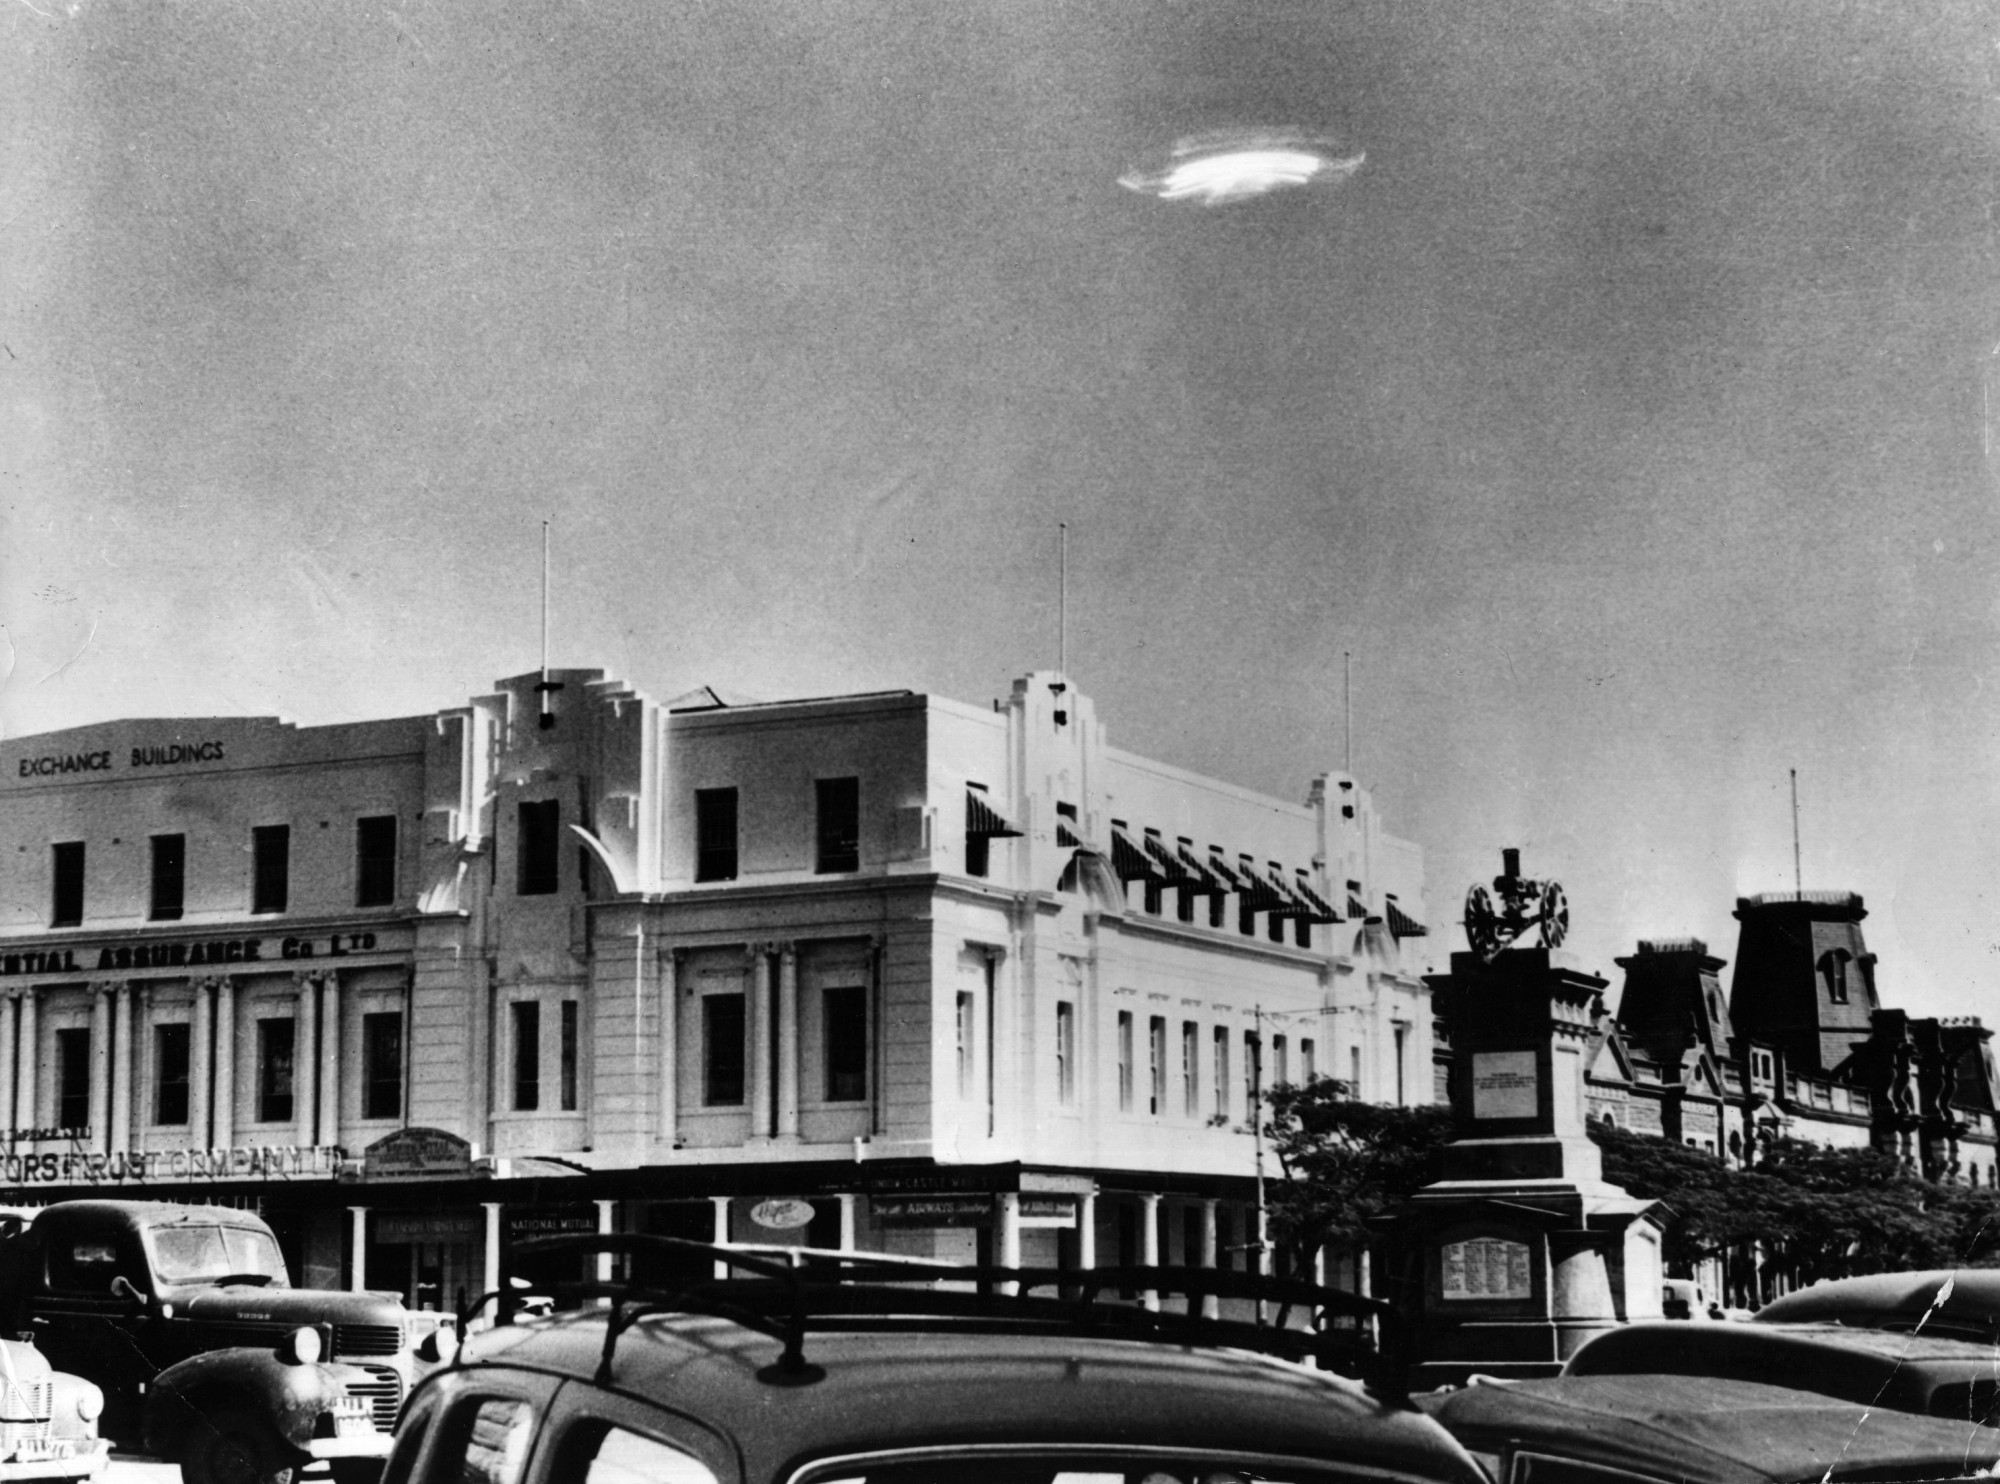 UFO Investigations Expert Claims They Could Soon Have 'Definitive Conclusions' on UFO Origins